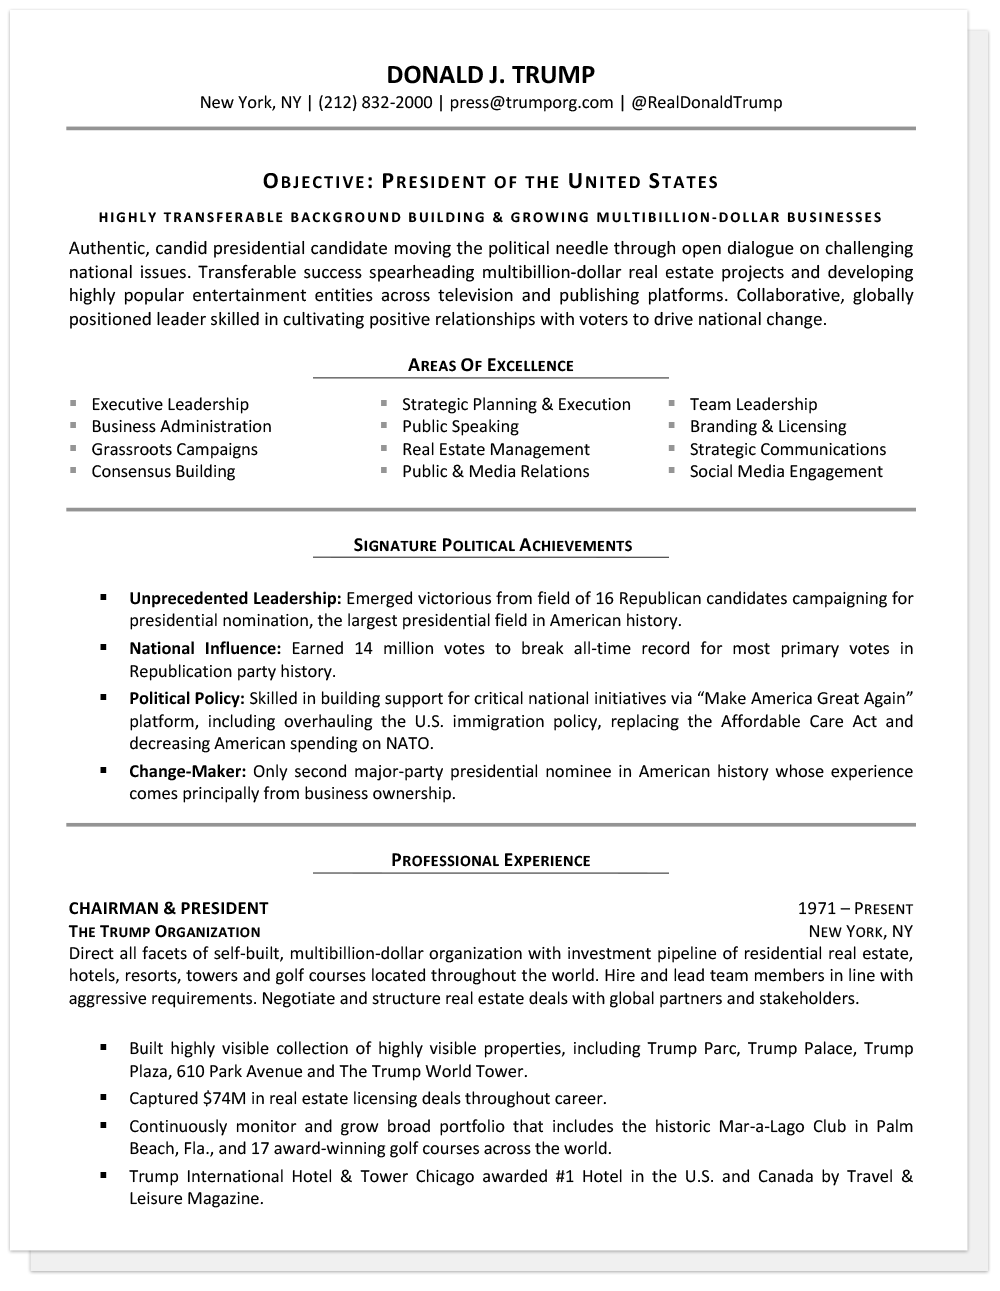 sample senior resume hillary clinton sample senior resume donald trump - Top Resume